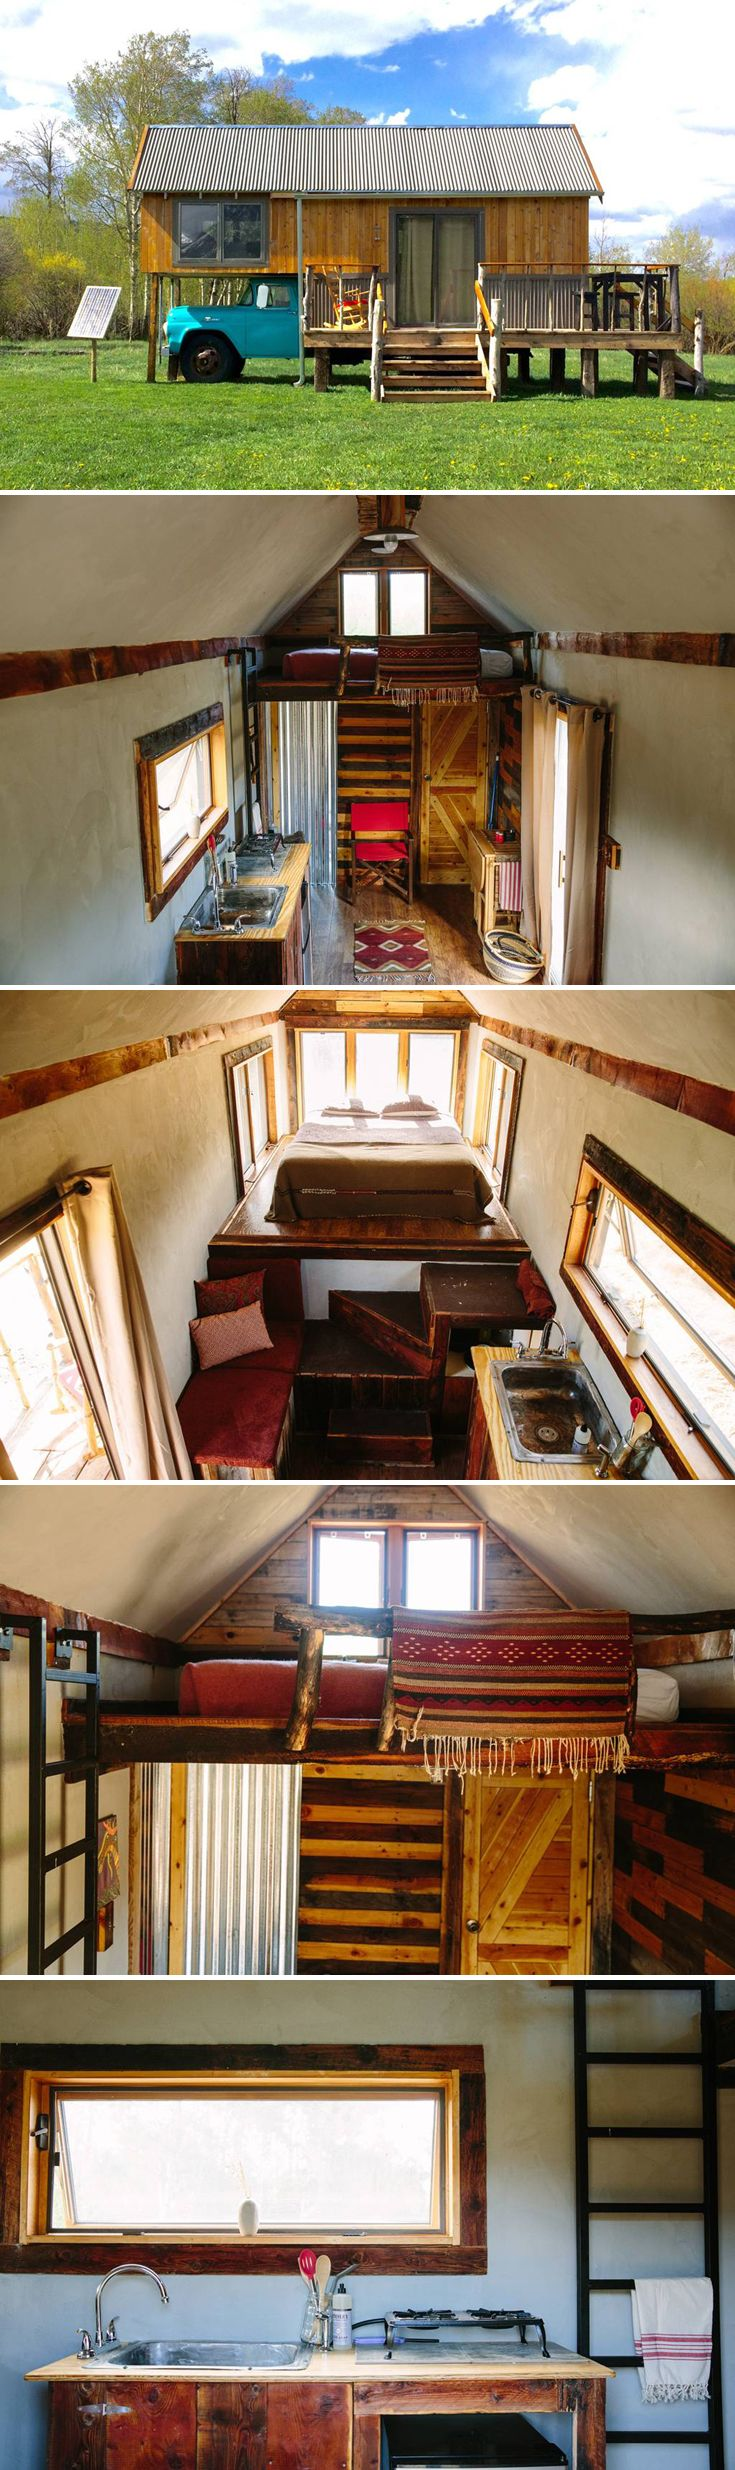 Custom made on the back of an old stock truck, this is one of the most unique tiny houses we've seen! Reclaimed materials were used throughout the house.